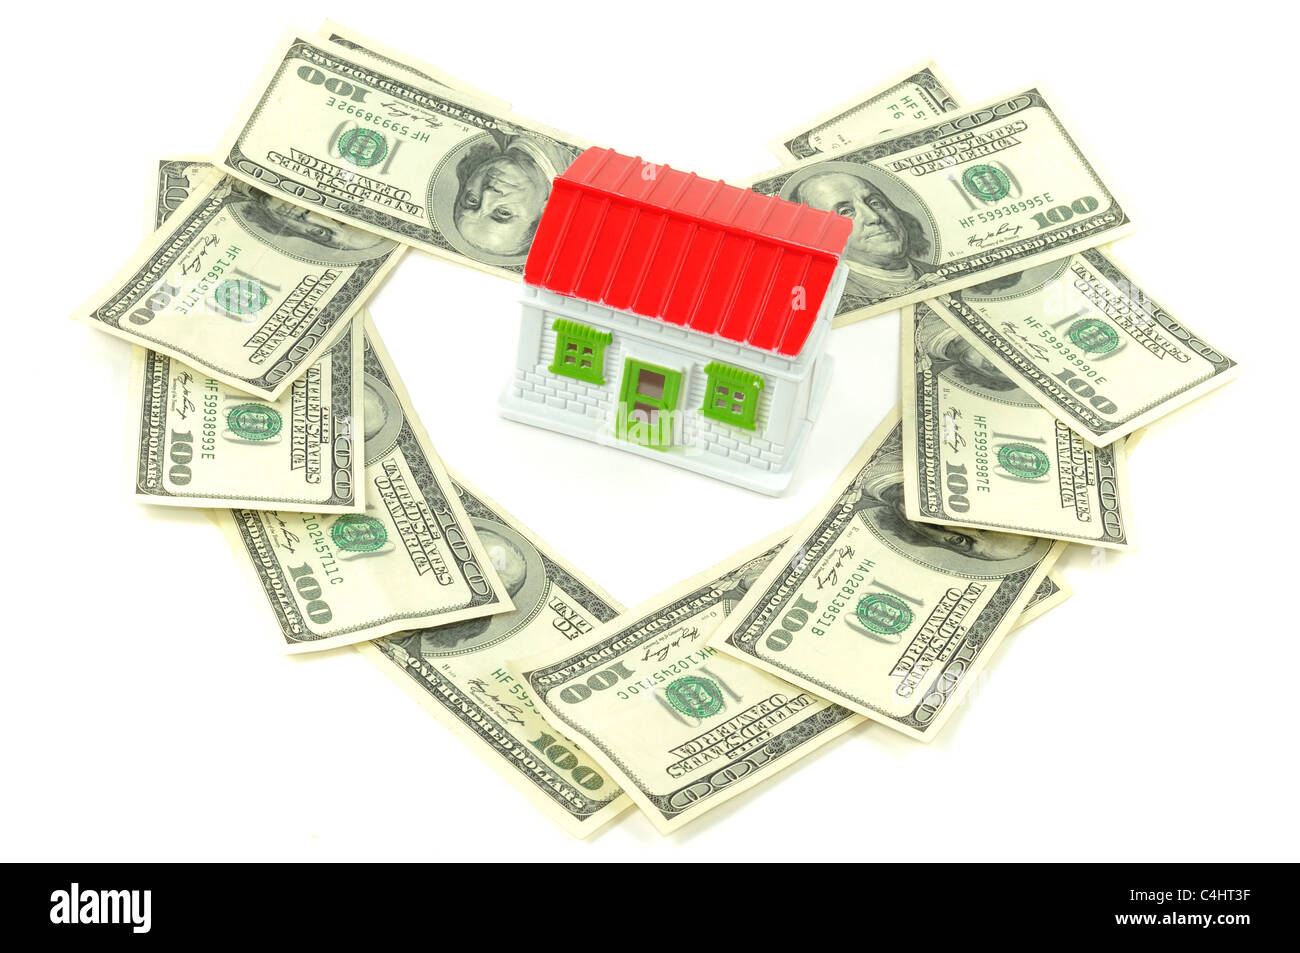 Toy house with hundreds dollars around it, over white background - Stock Image